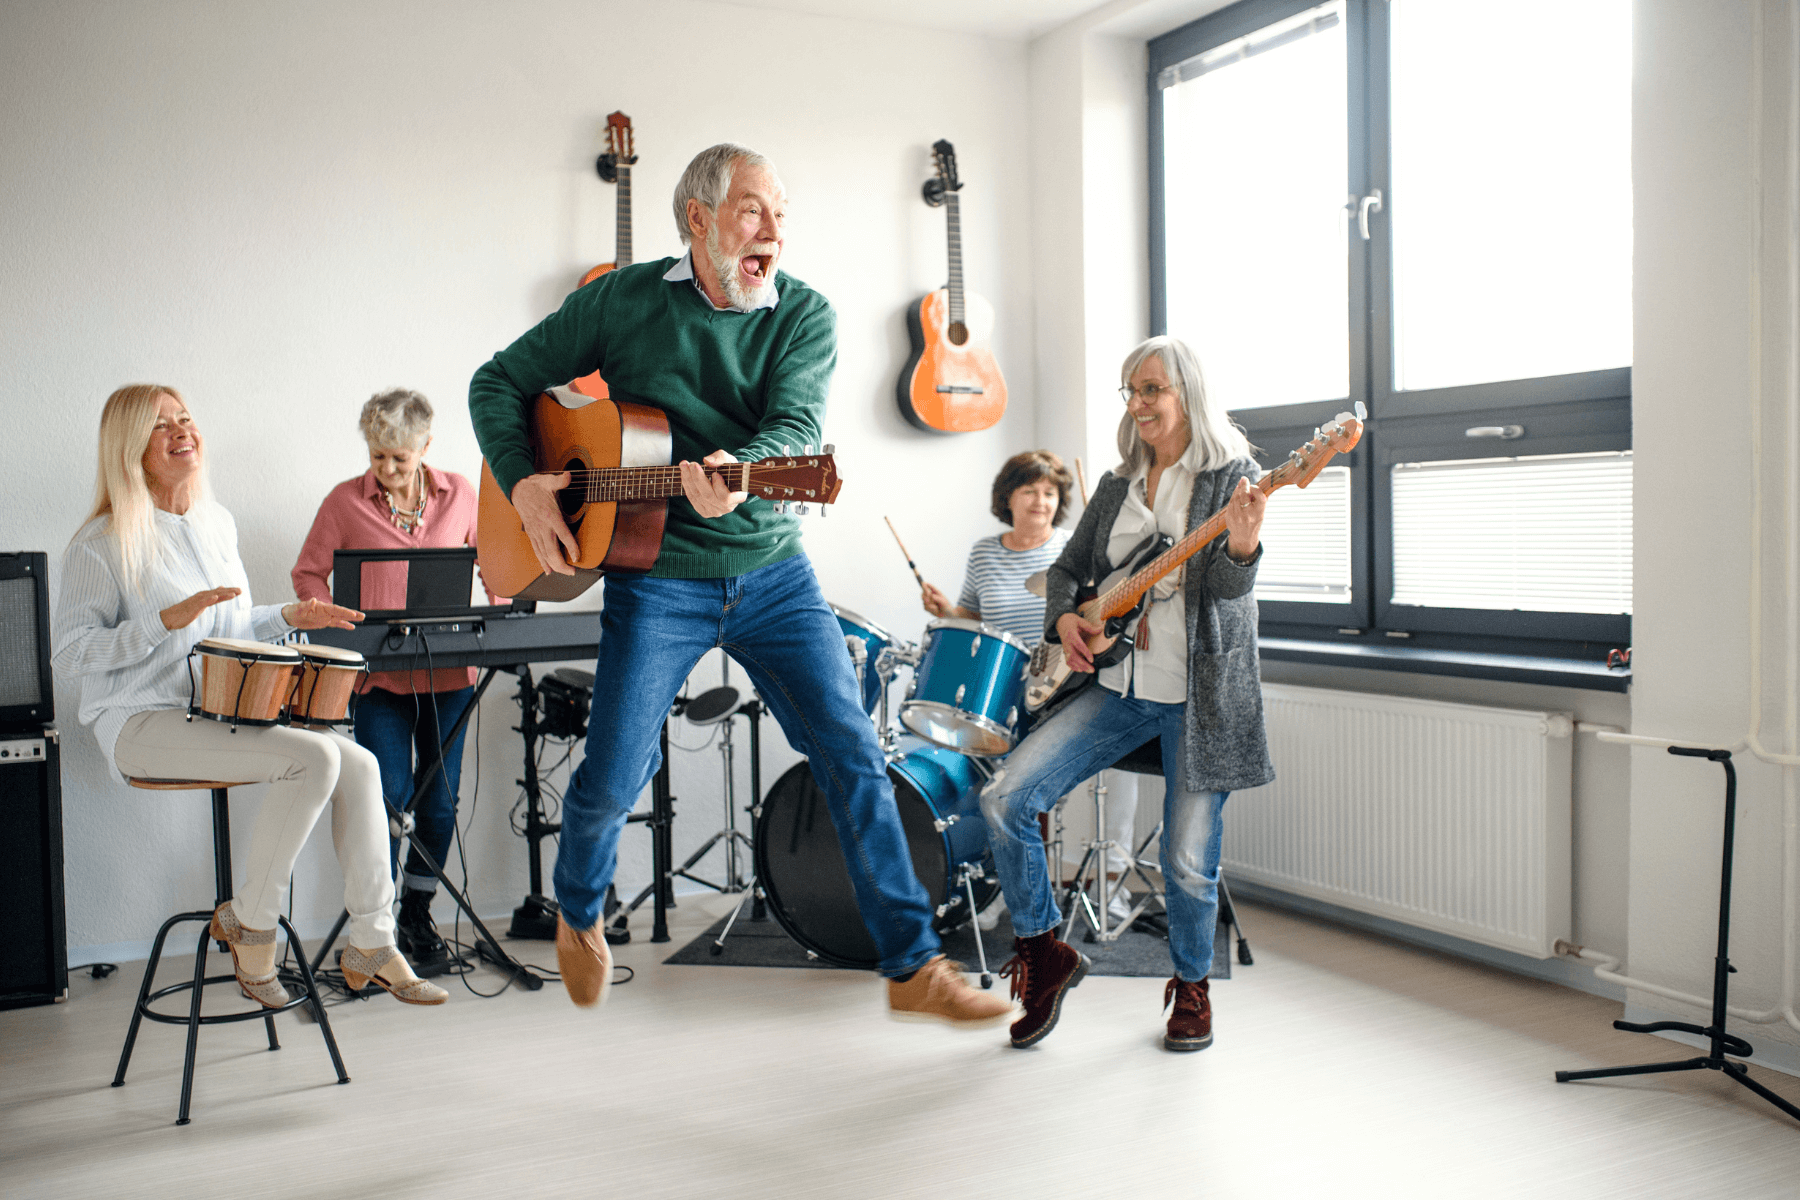 5 Best Instruments to Learn in an Assisted Living Community